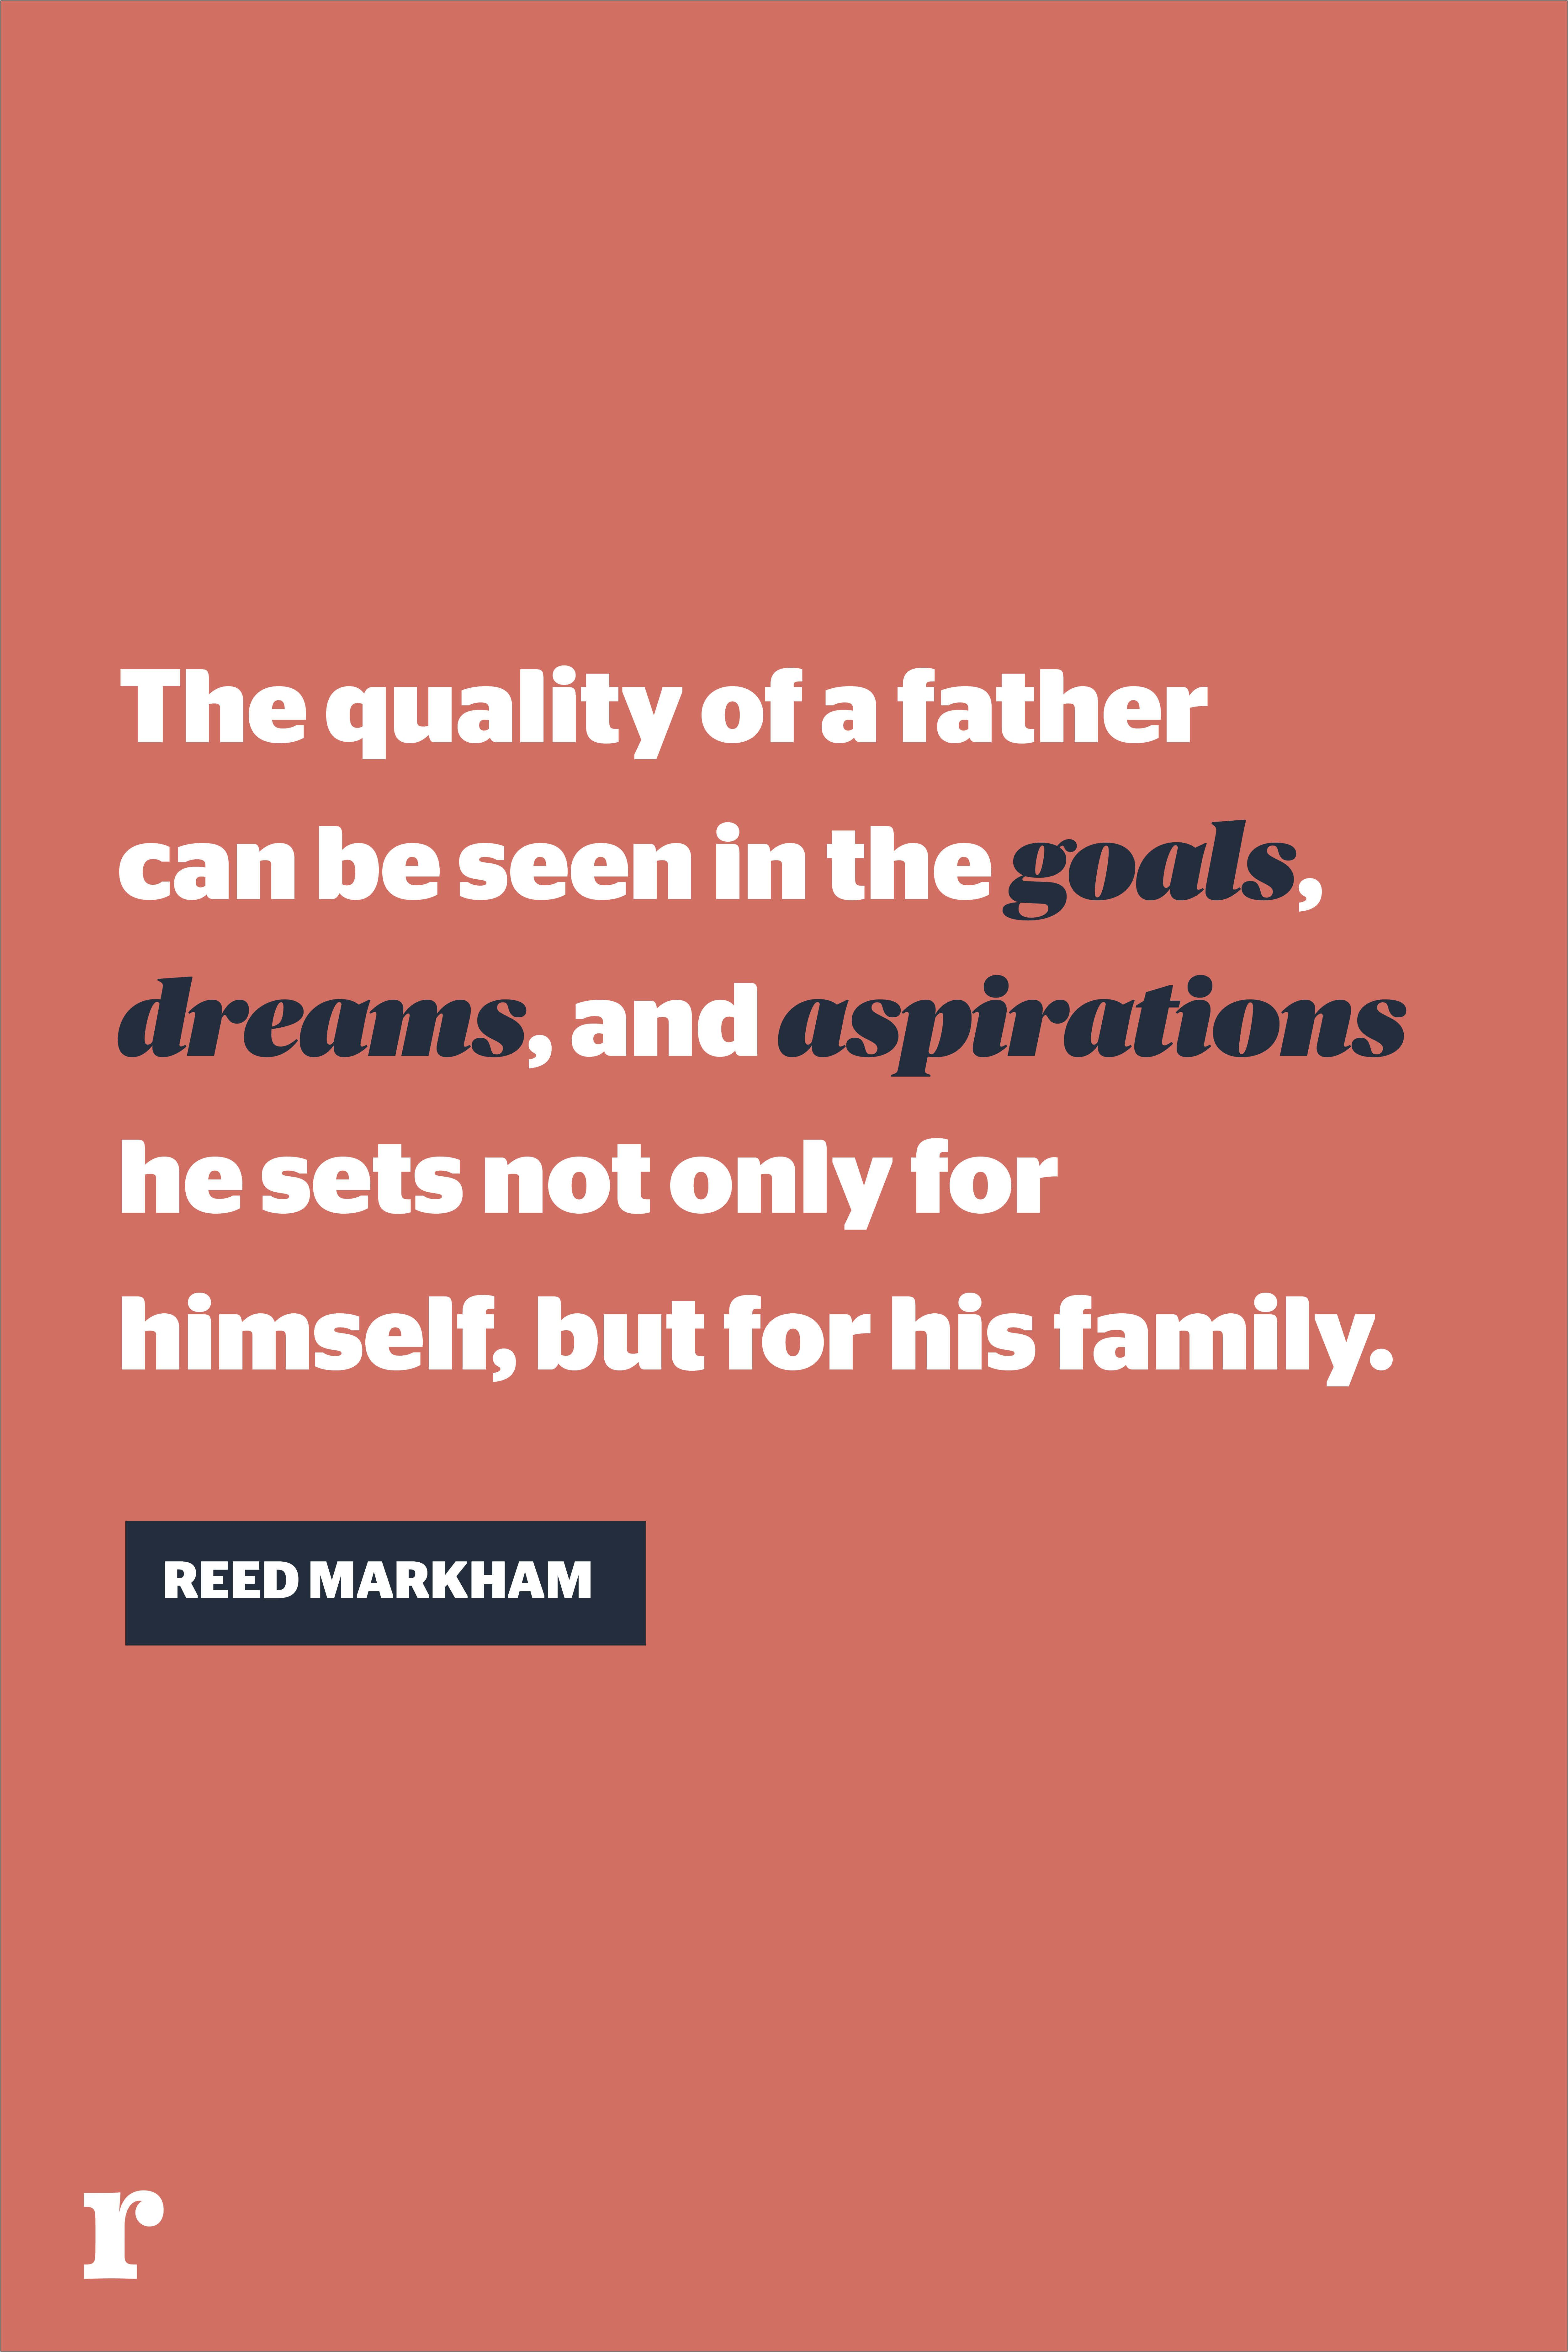 15 Best Father S Day Quotes To Share With Dad Meaningful